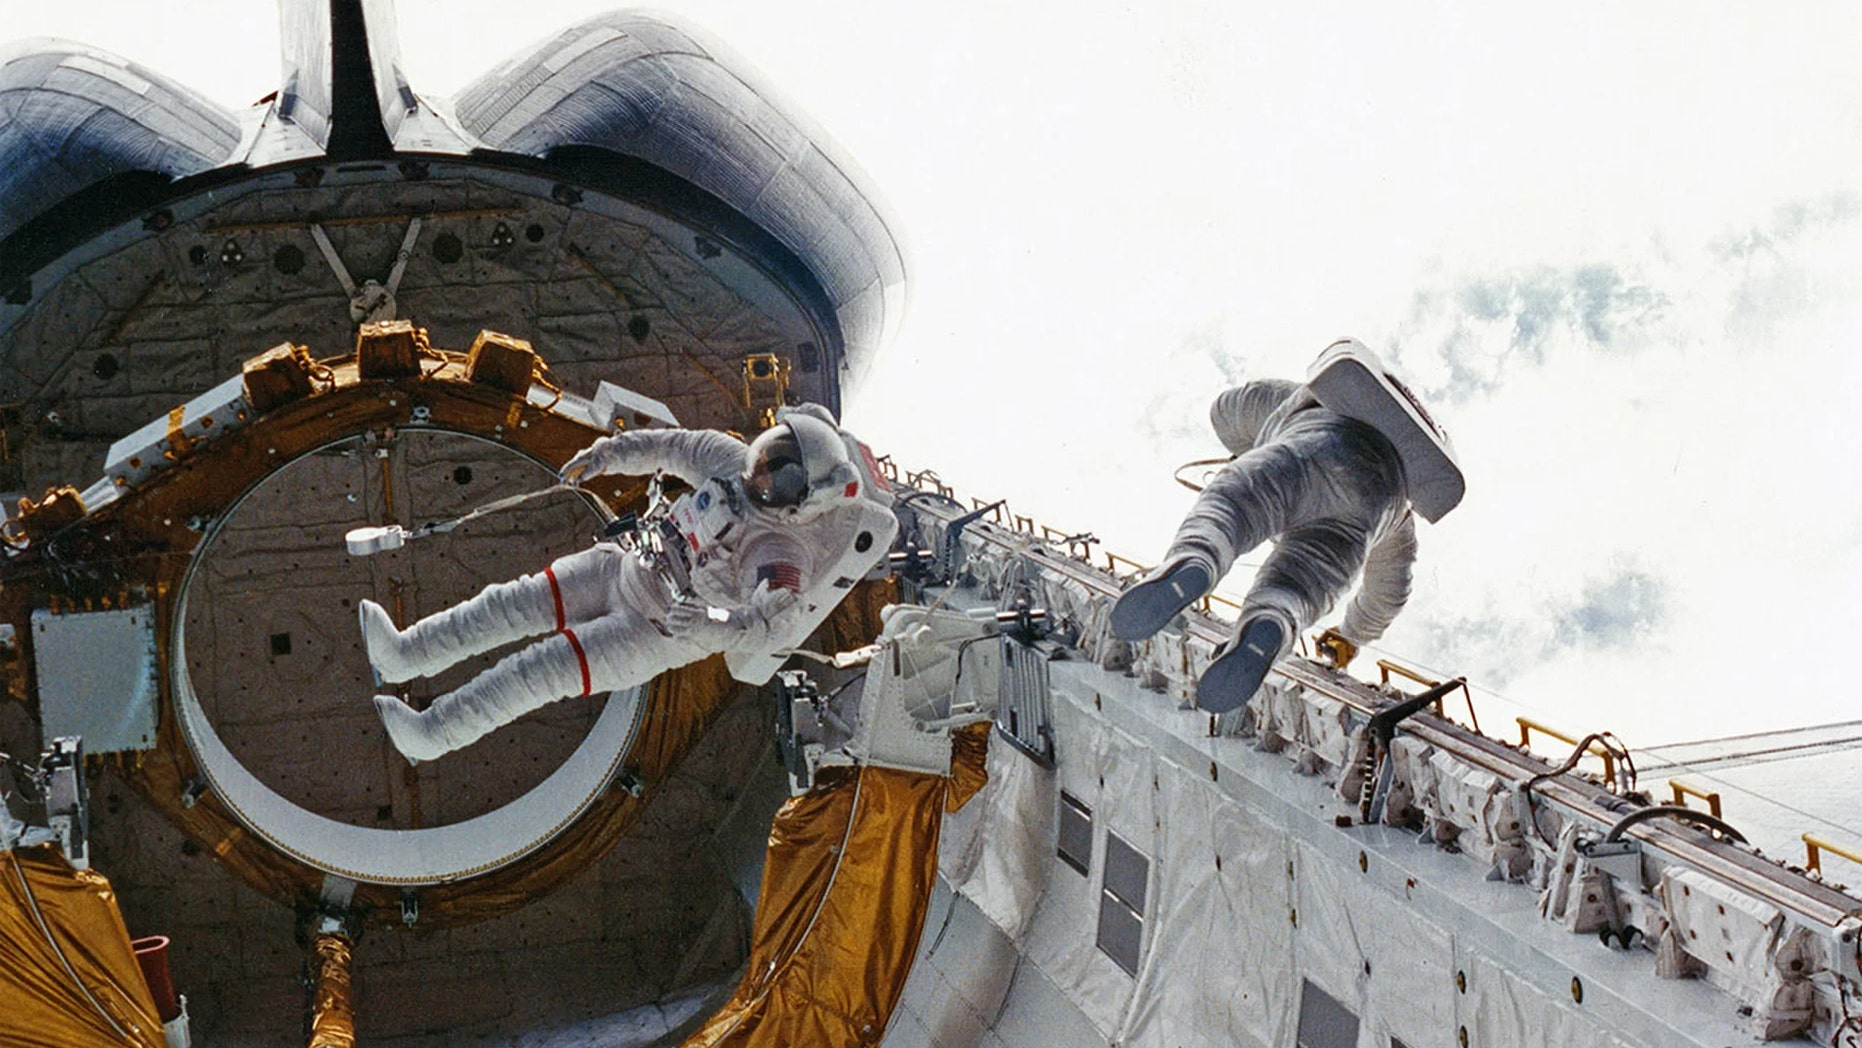 STS-6 crewmates Don Peterson (at right) and Story Musgrave perform the first shuttle-era spacewalk outside Challenger in 1983. (Credit: NASA)